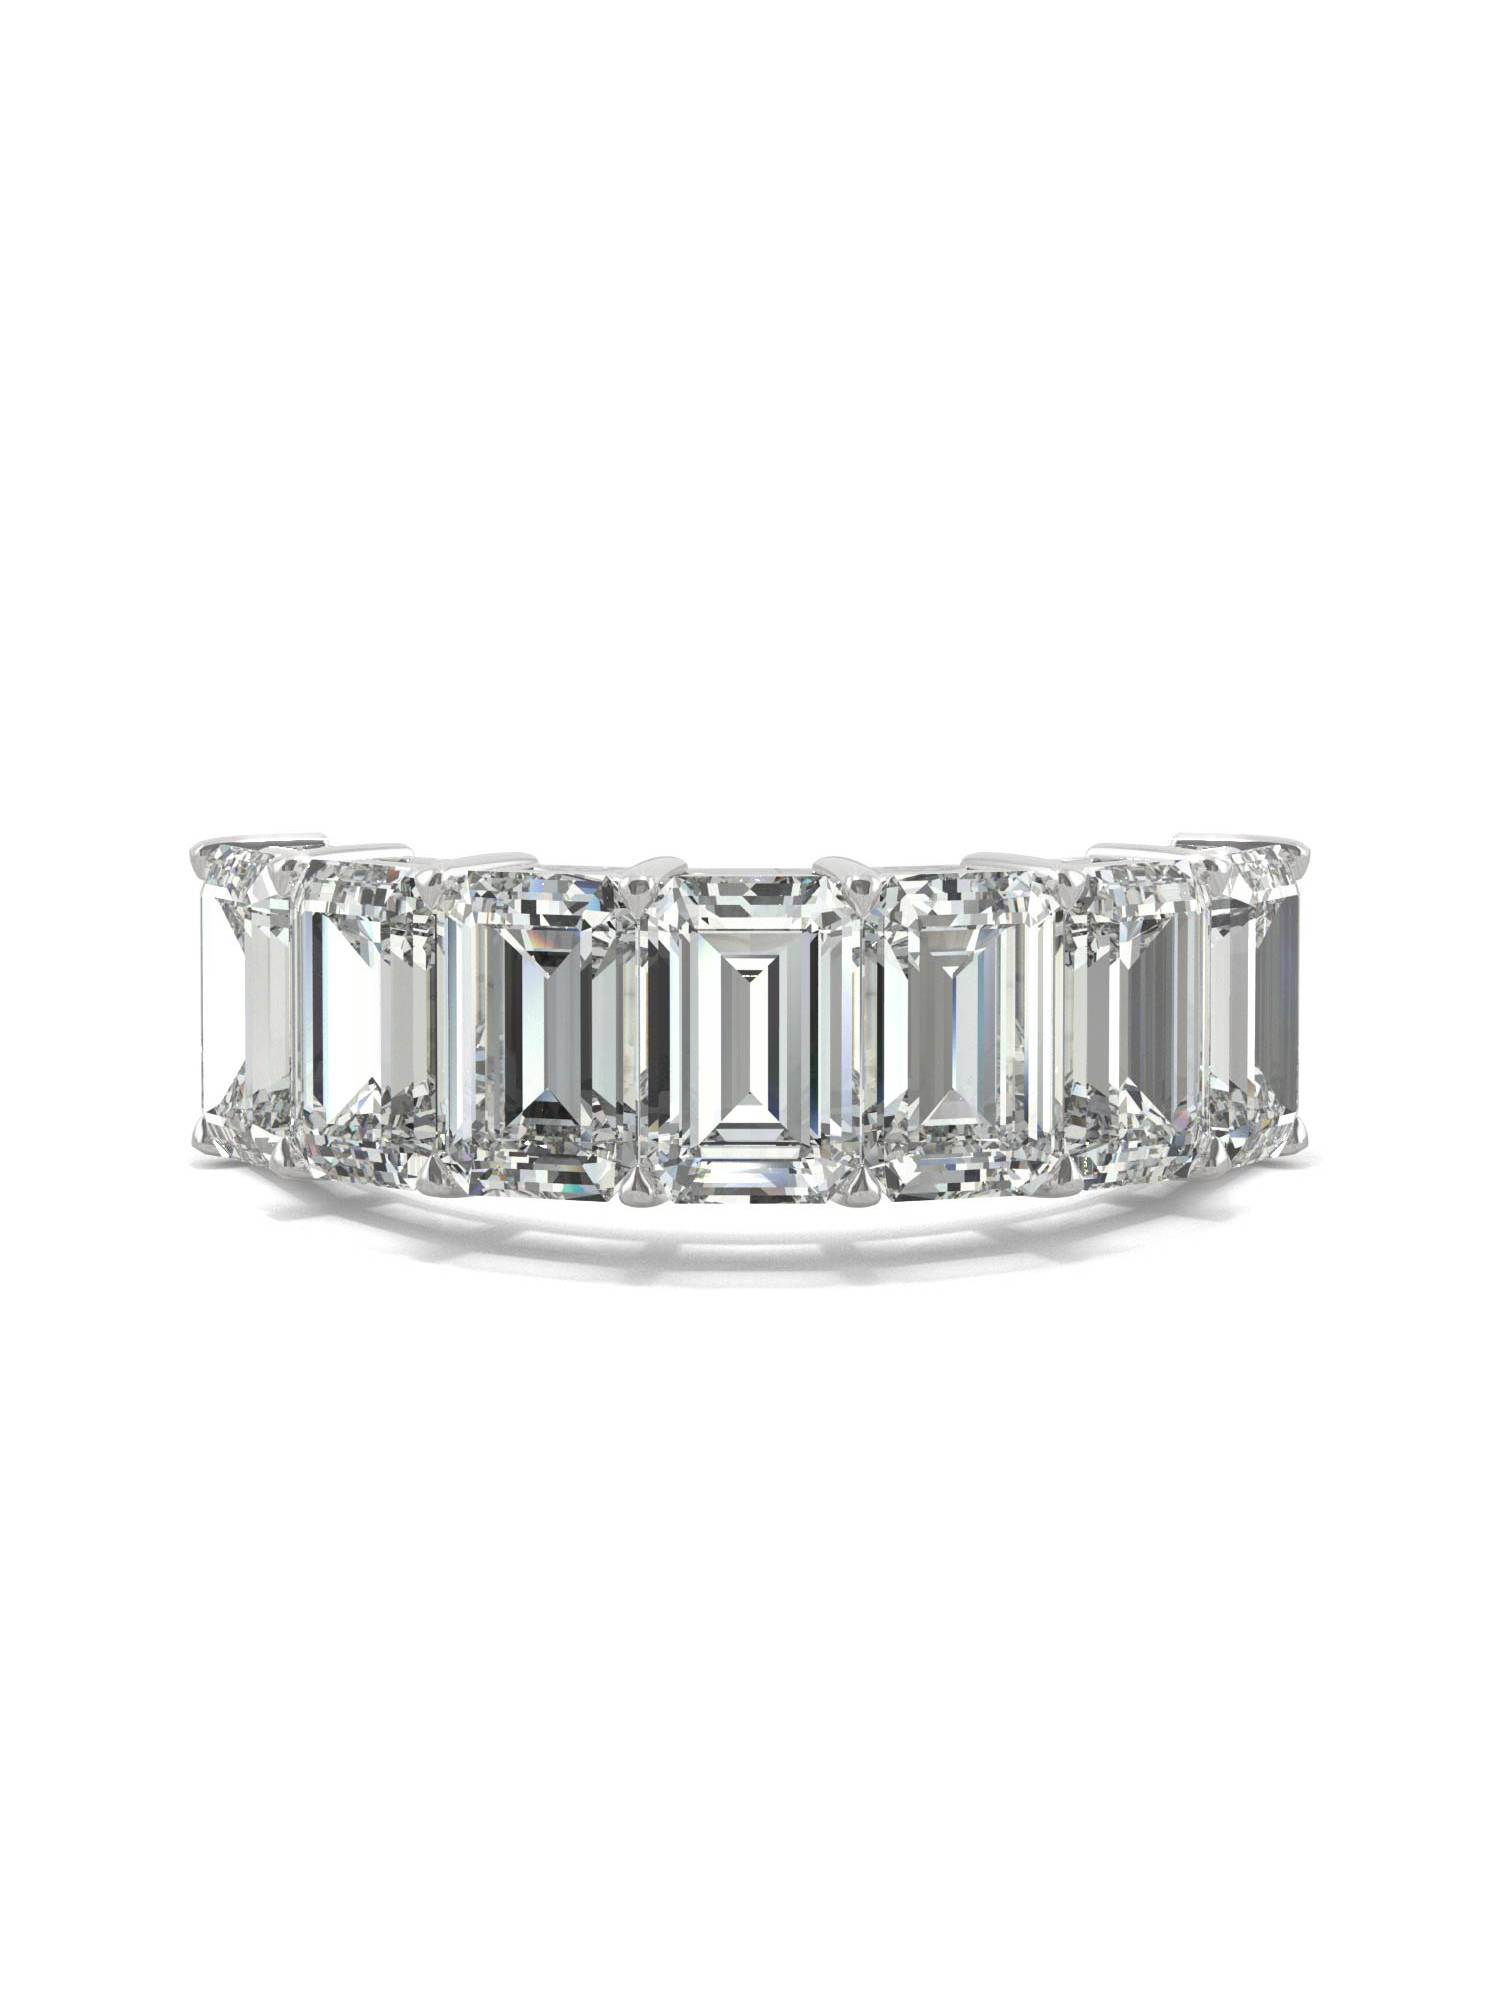 4.06cttw DEW 14K White Gold Moissanite by Charles /& Colvard 6x4mm Emerald Wedding Band